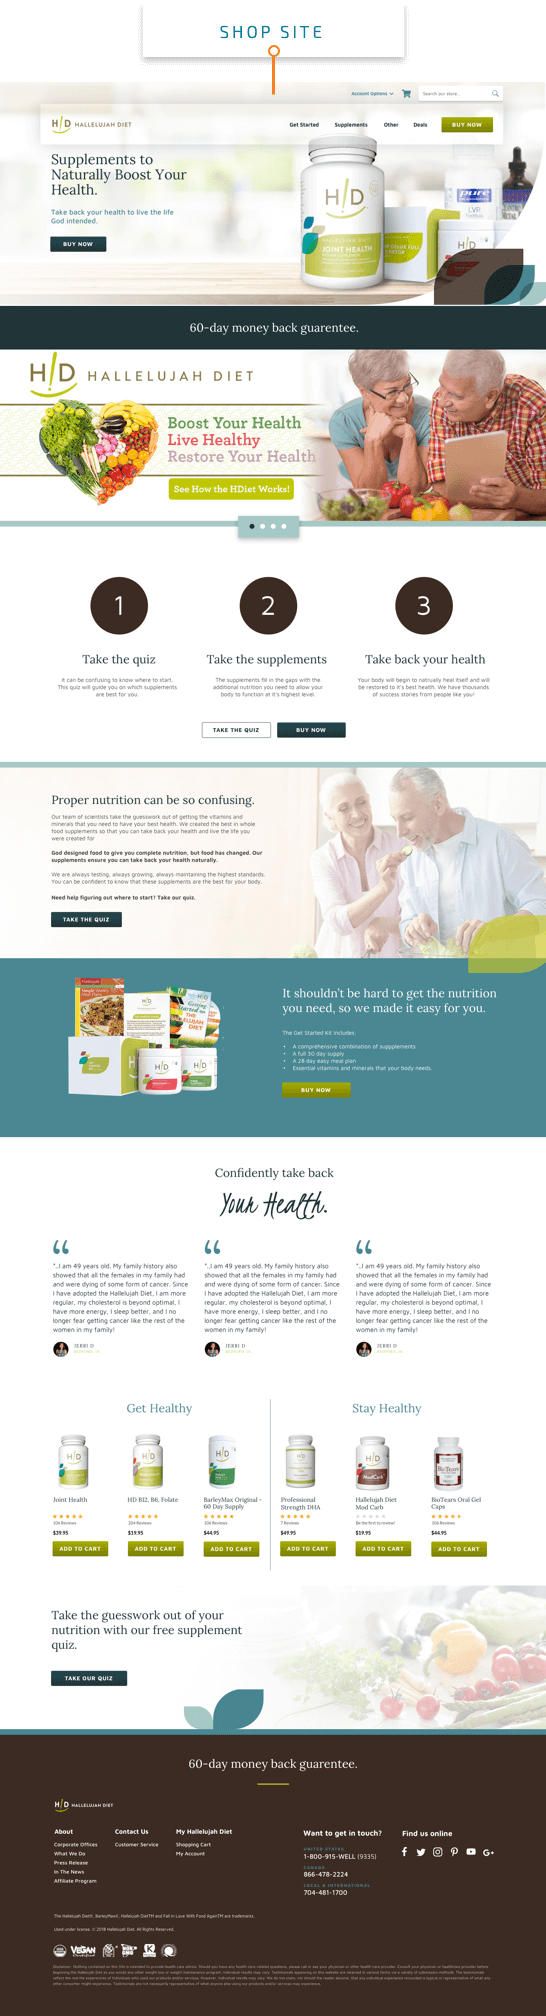 hallelujah diet shop website preview